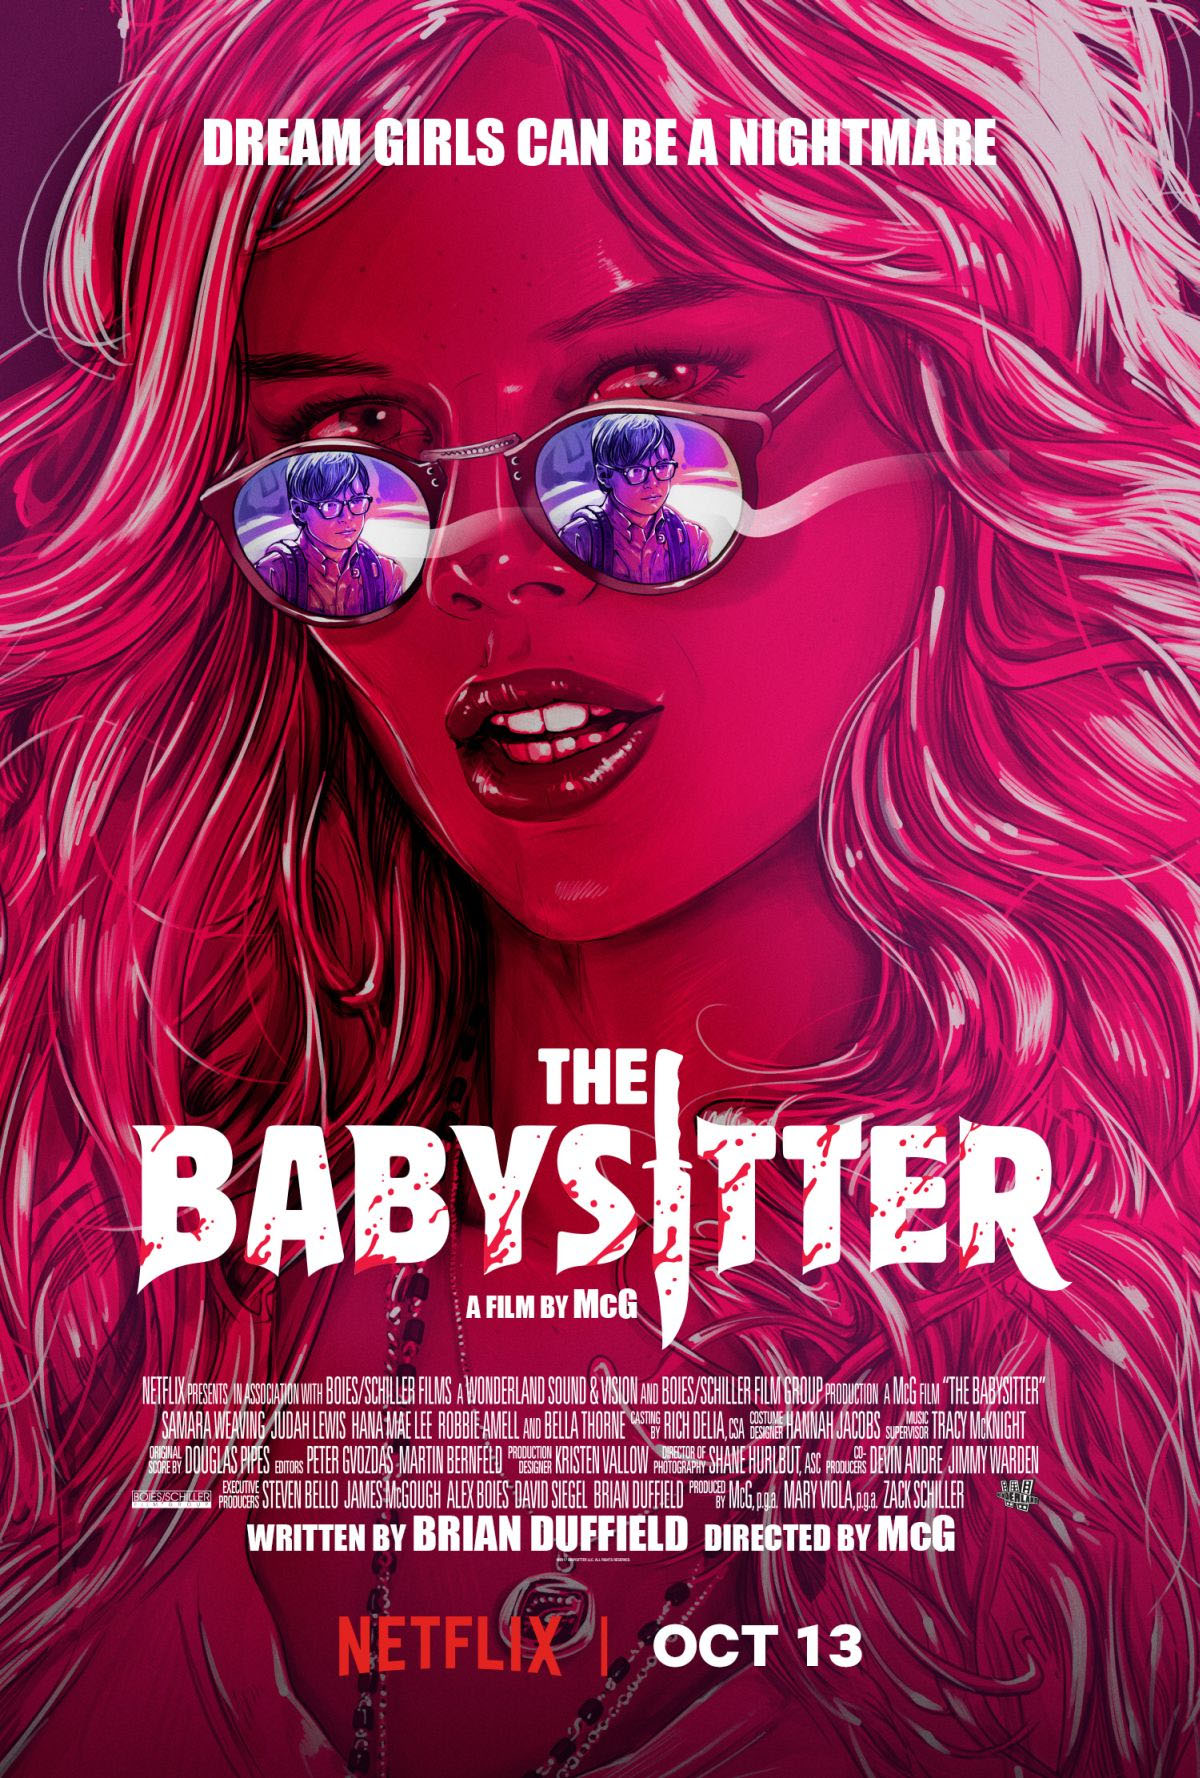 Image result for The babysitter